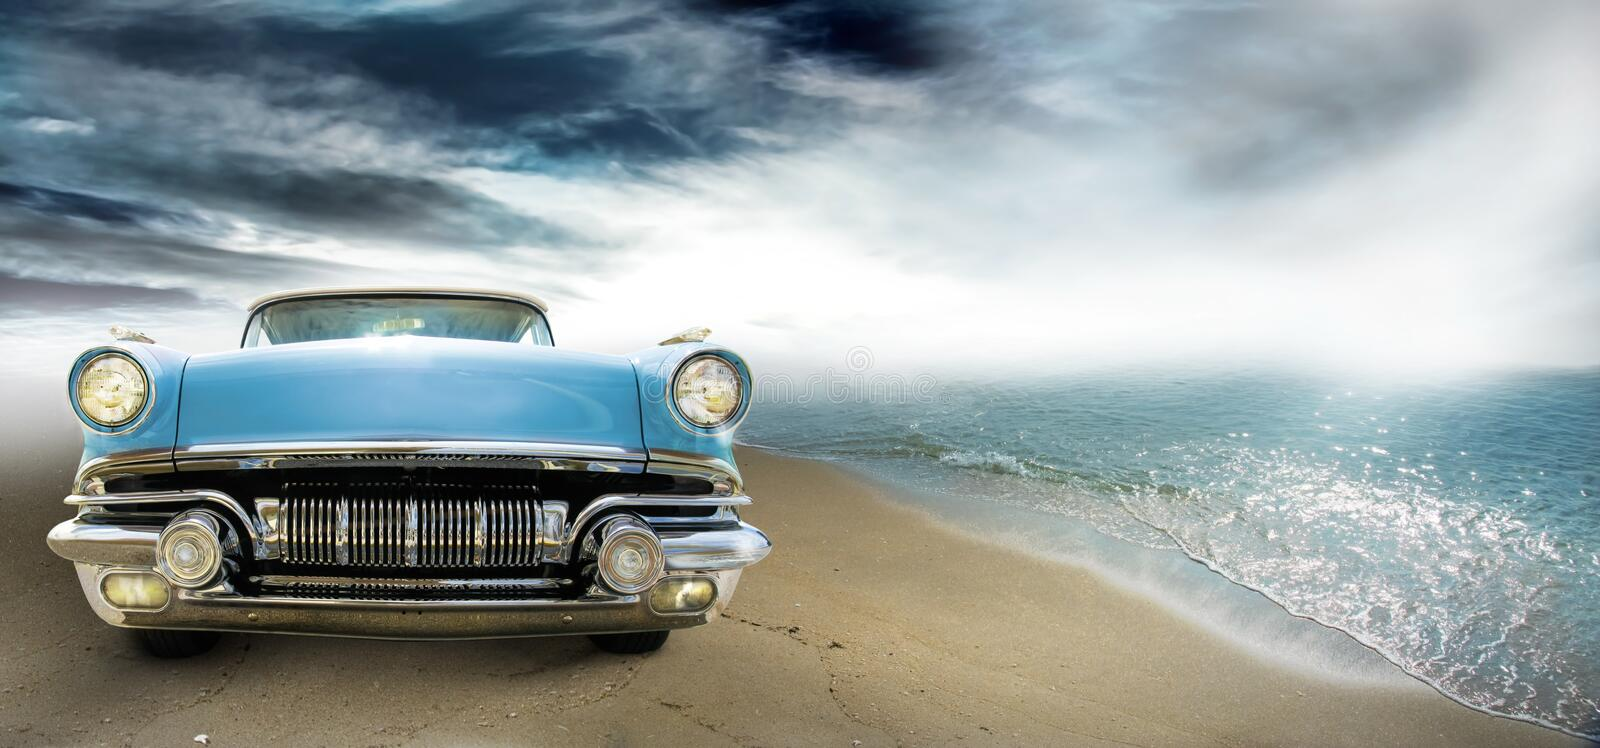 Vintage coupe. A two door cyan convertible vintage American automobile on a sandy beach with stormy background. Front view of a collectible Pontiac Sky Chief